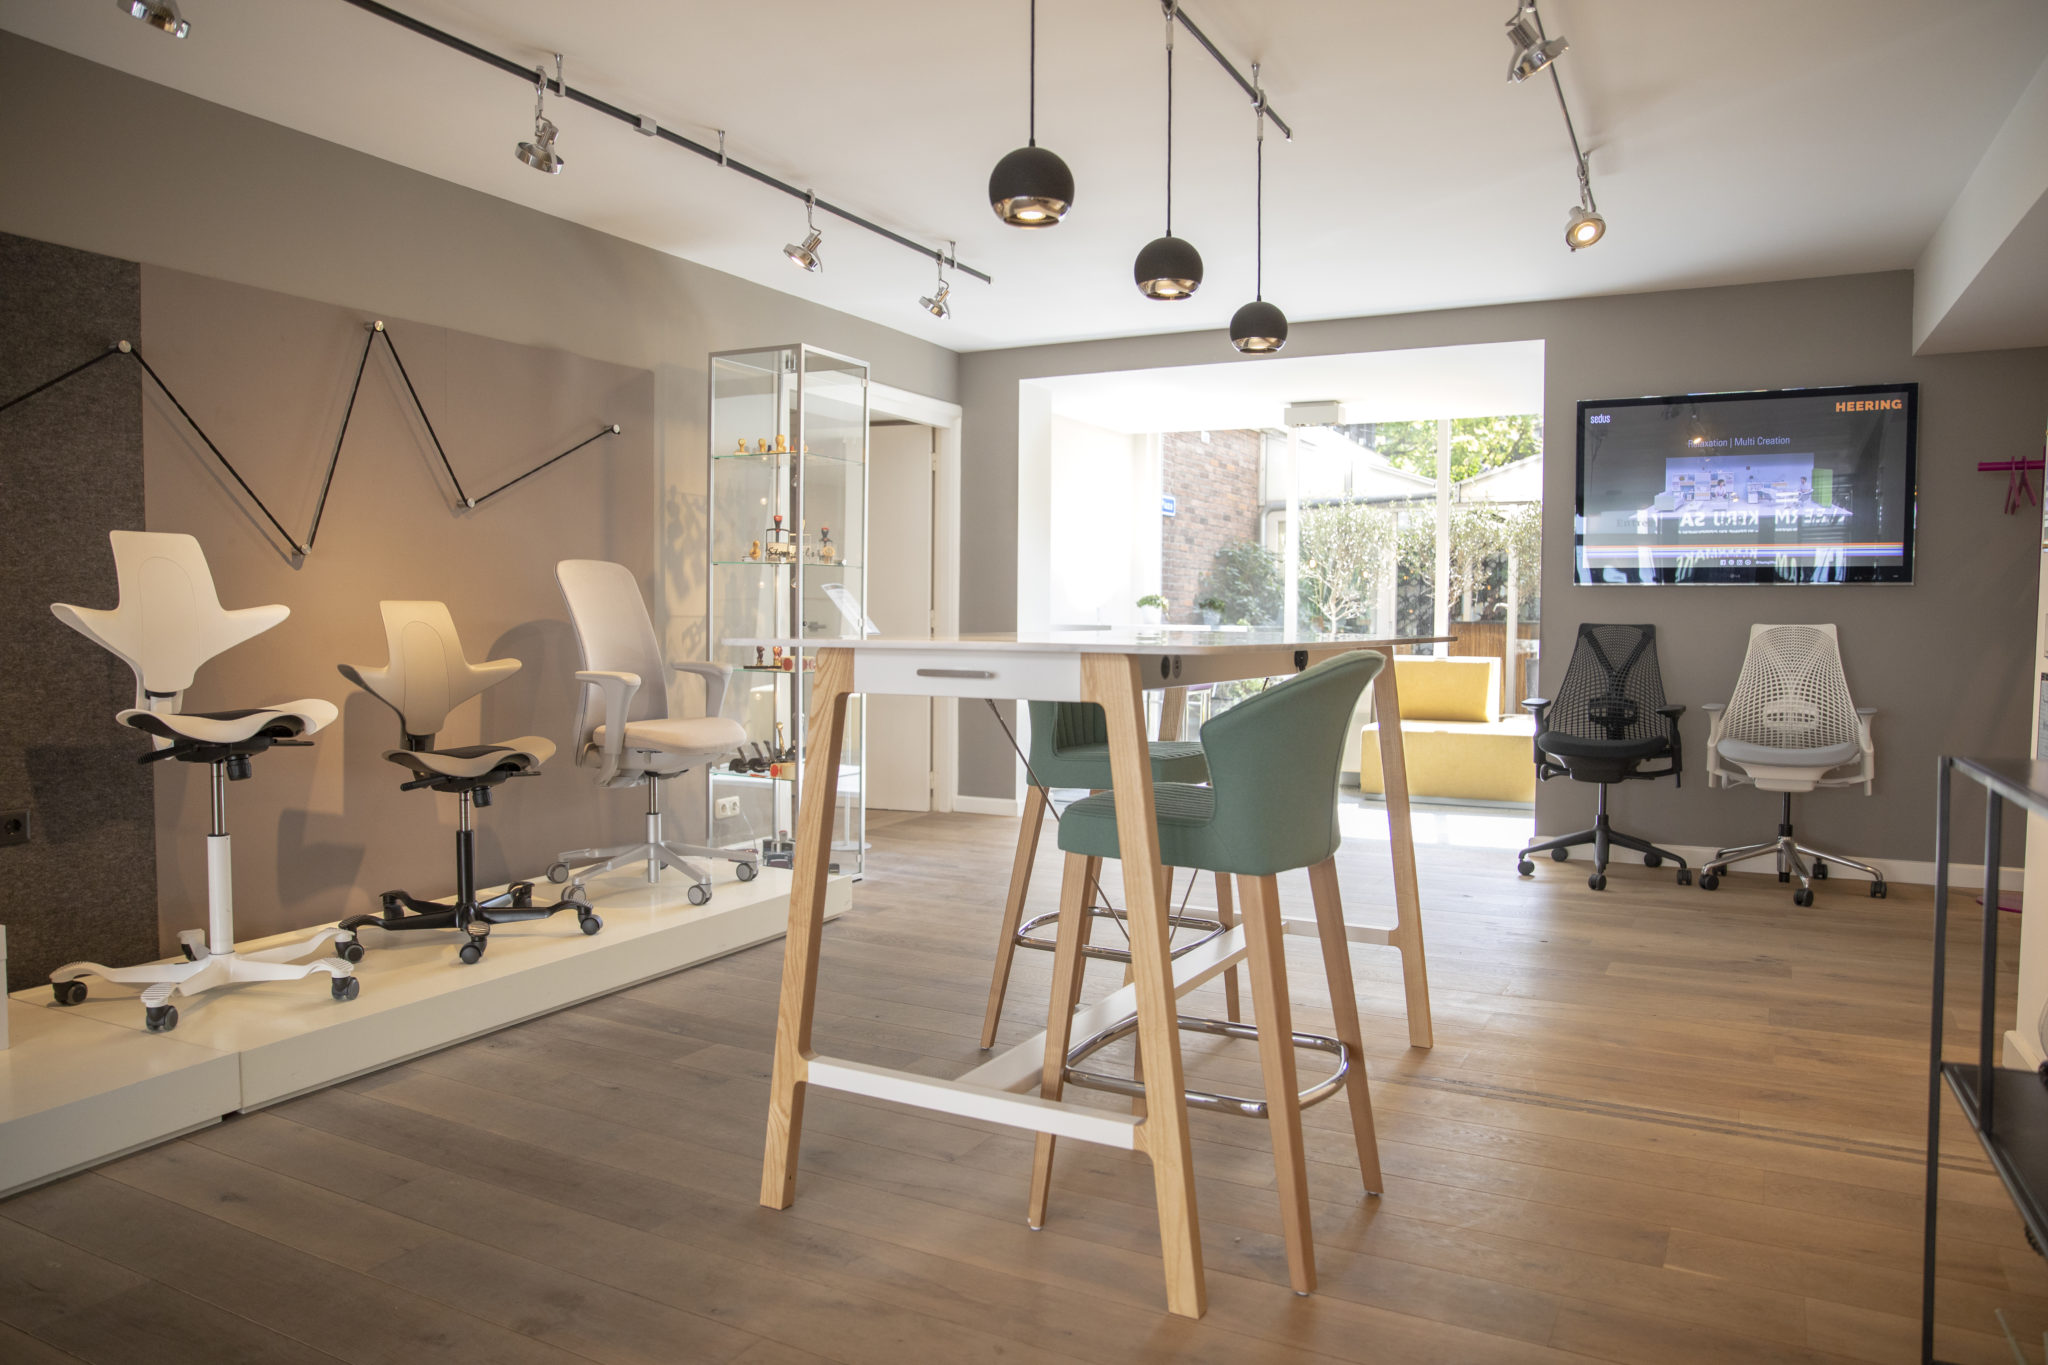 showroom kantoormeubilair Heering Office Den Haag